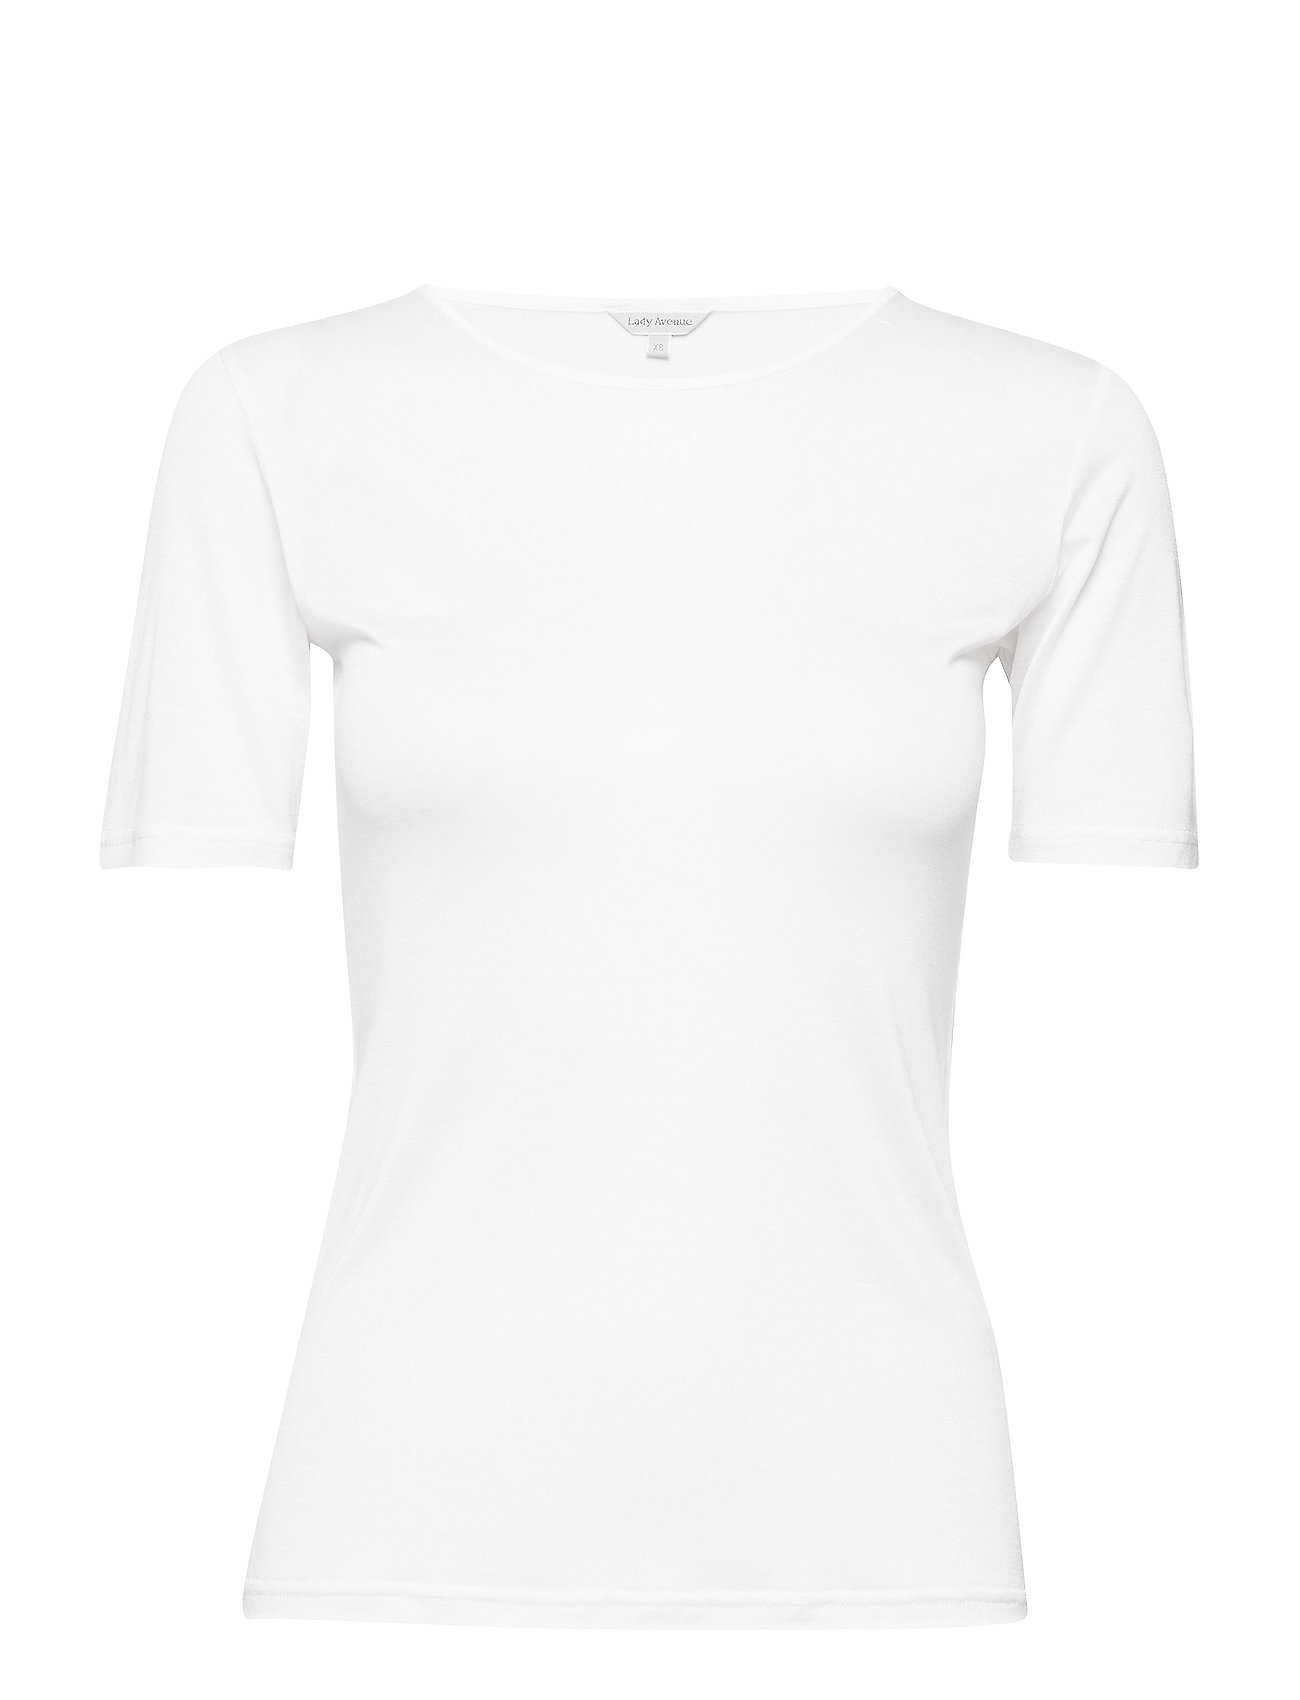 Lady Avenue Silk Jersey - T-shirt - OFF-WHITE